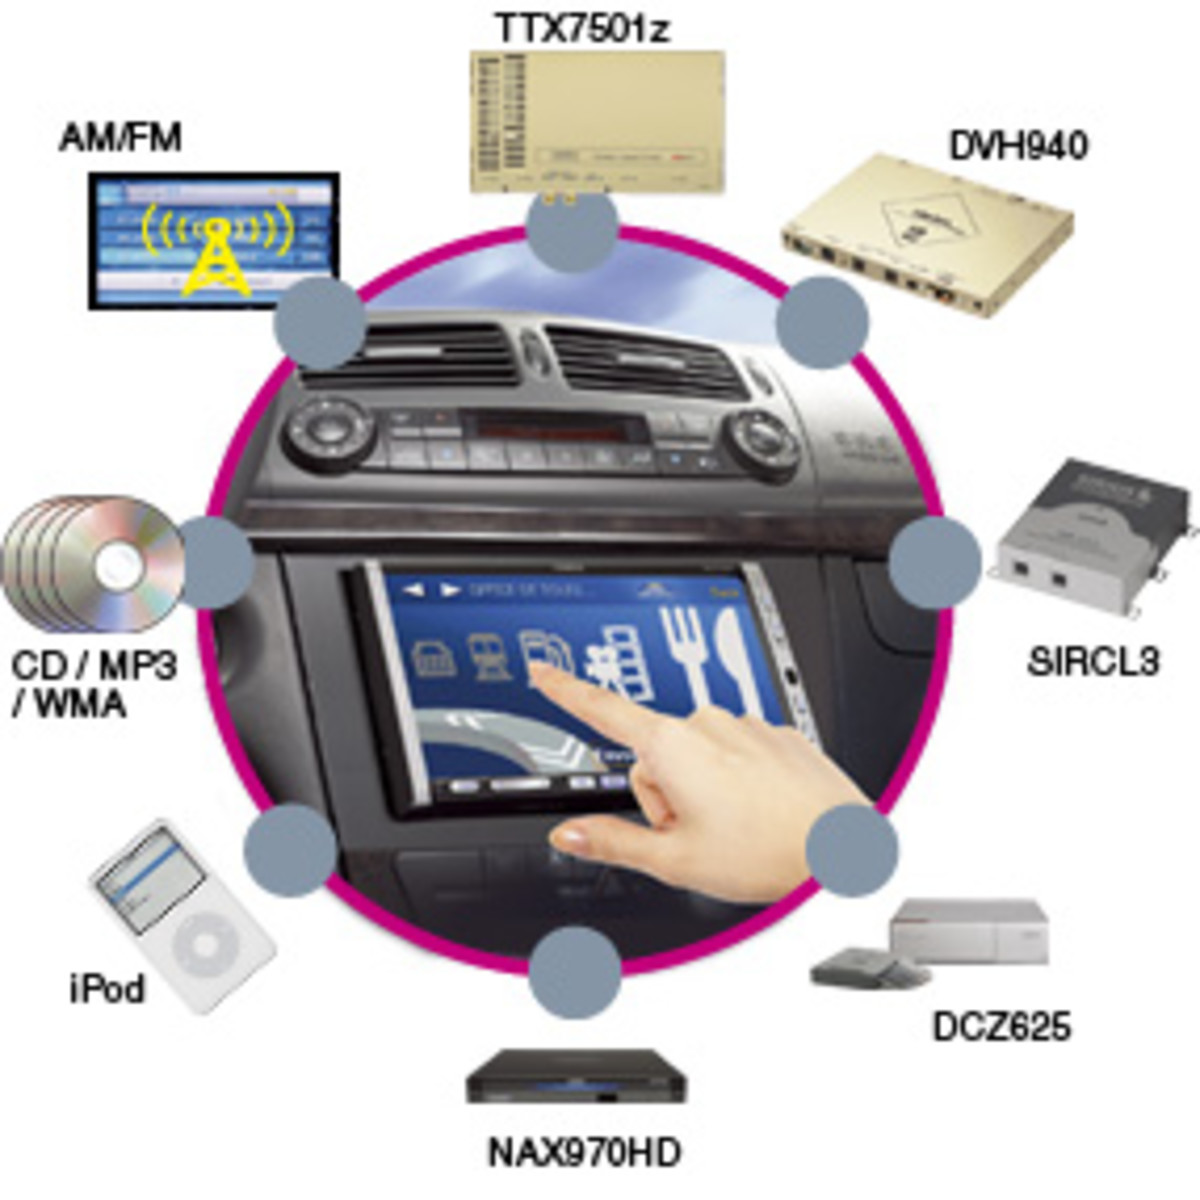 What is multimedia system? And it's applications?